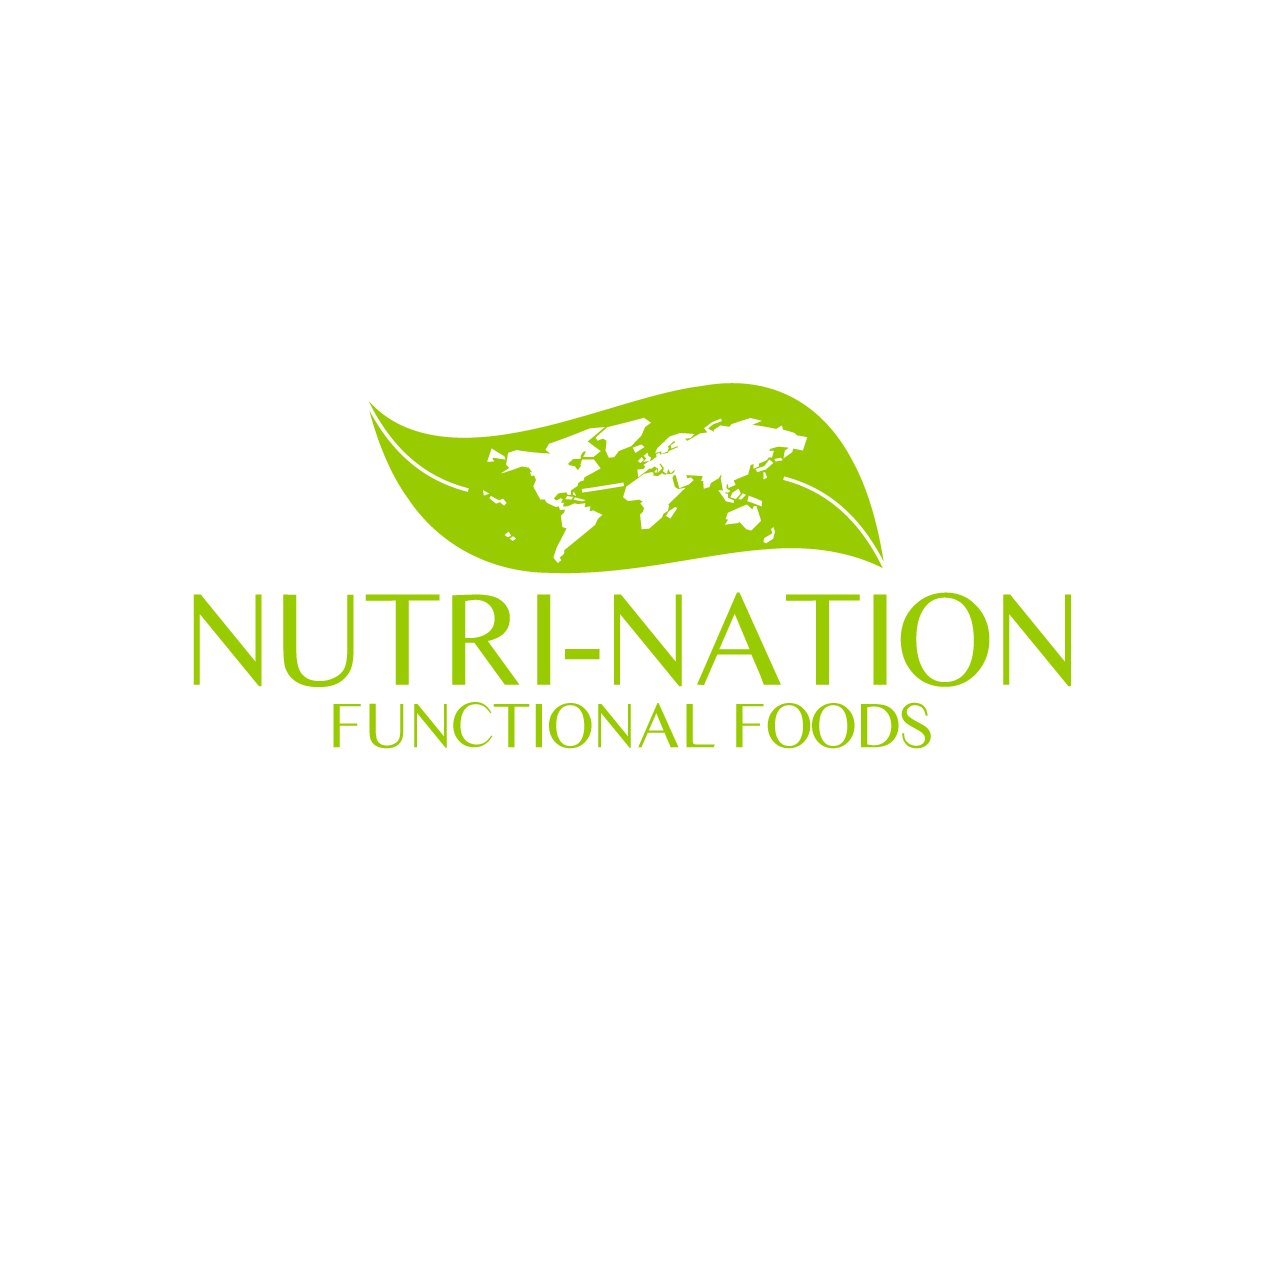 Logo Design by umxca - Entry No. 158 in the Logo Design Contest Nutri-Nation Functional Foods Logo.